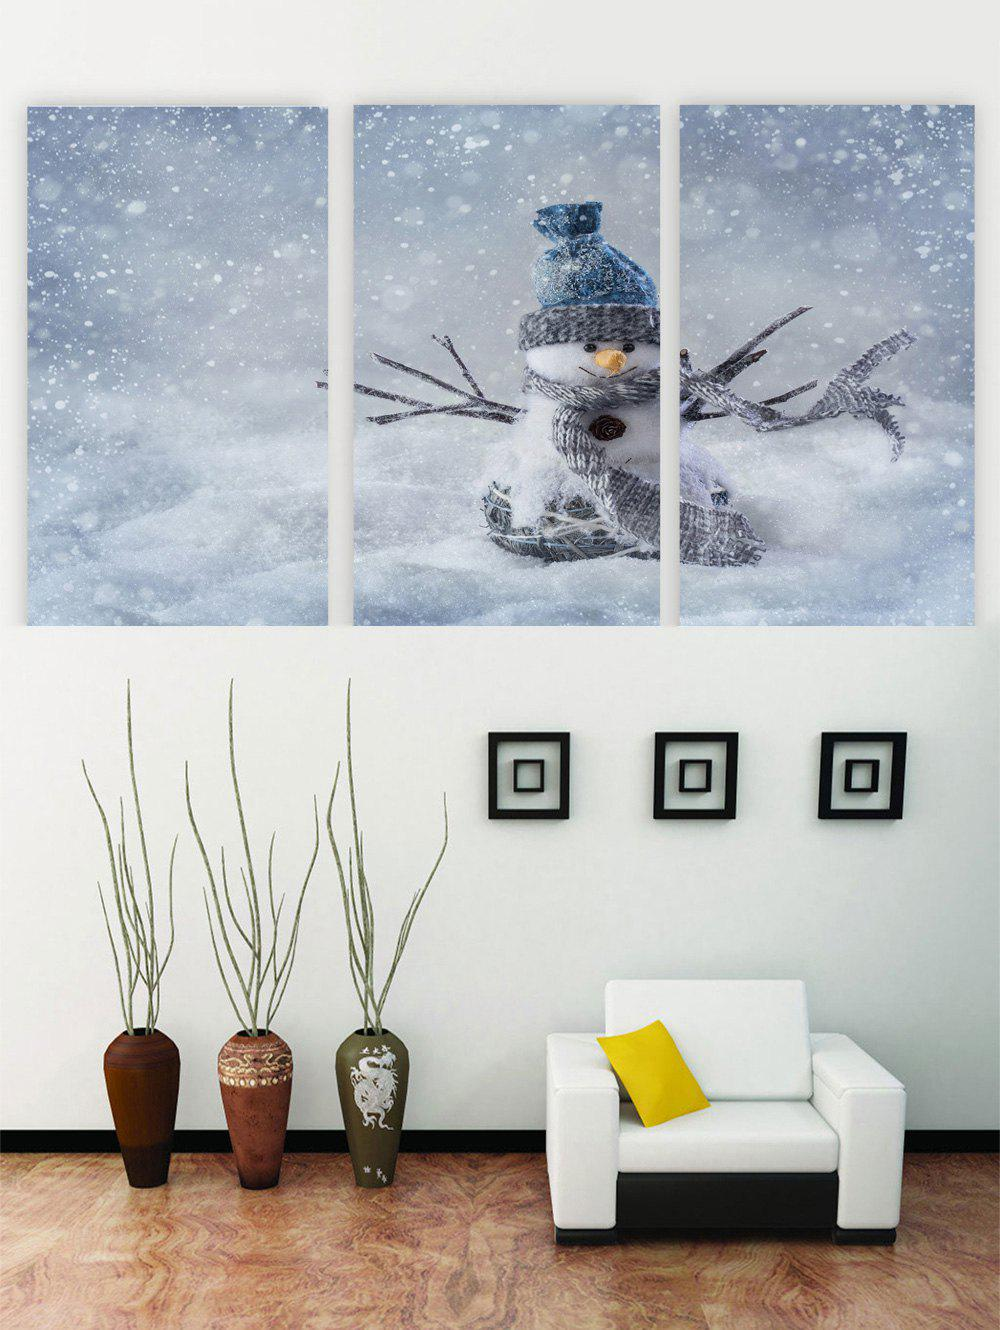 Hot Unframed Snowman Christmas Canvas Paintings